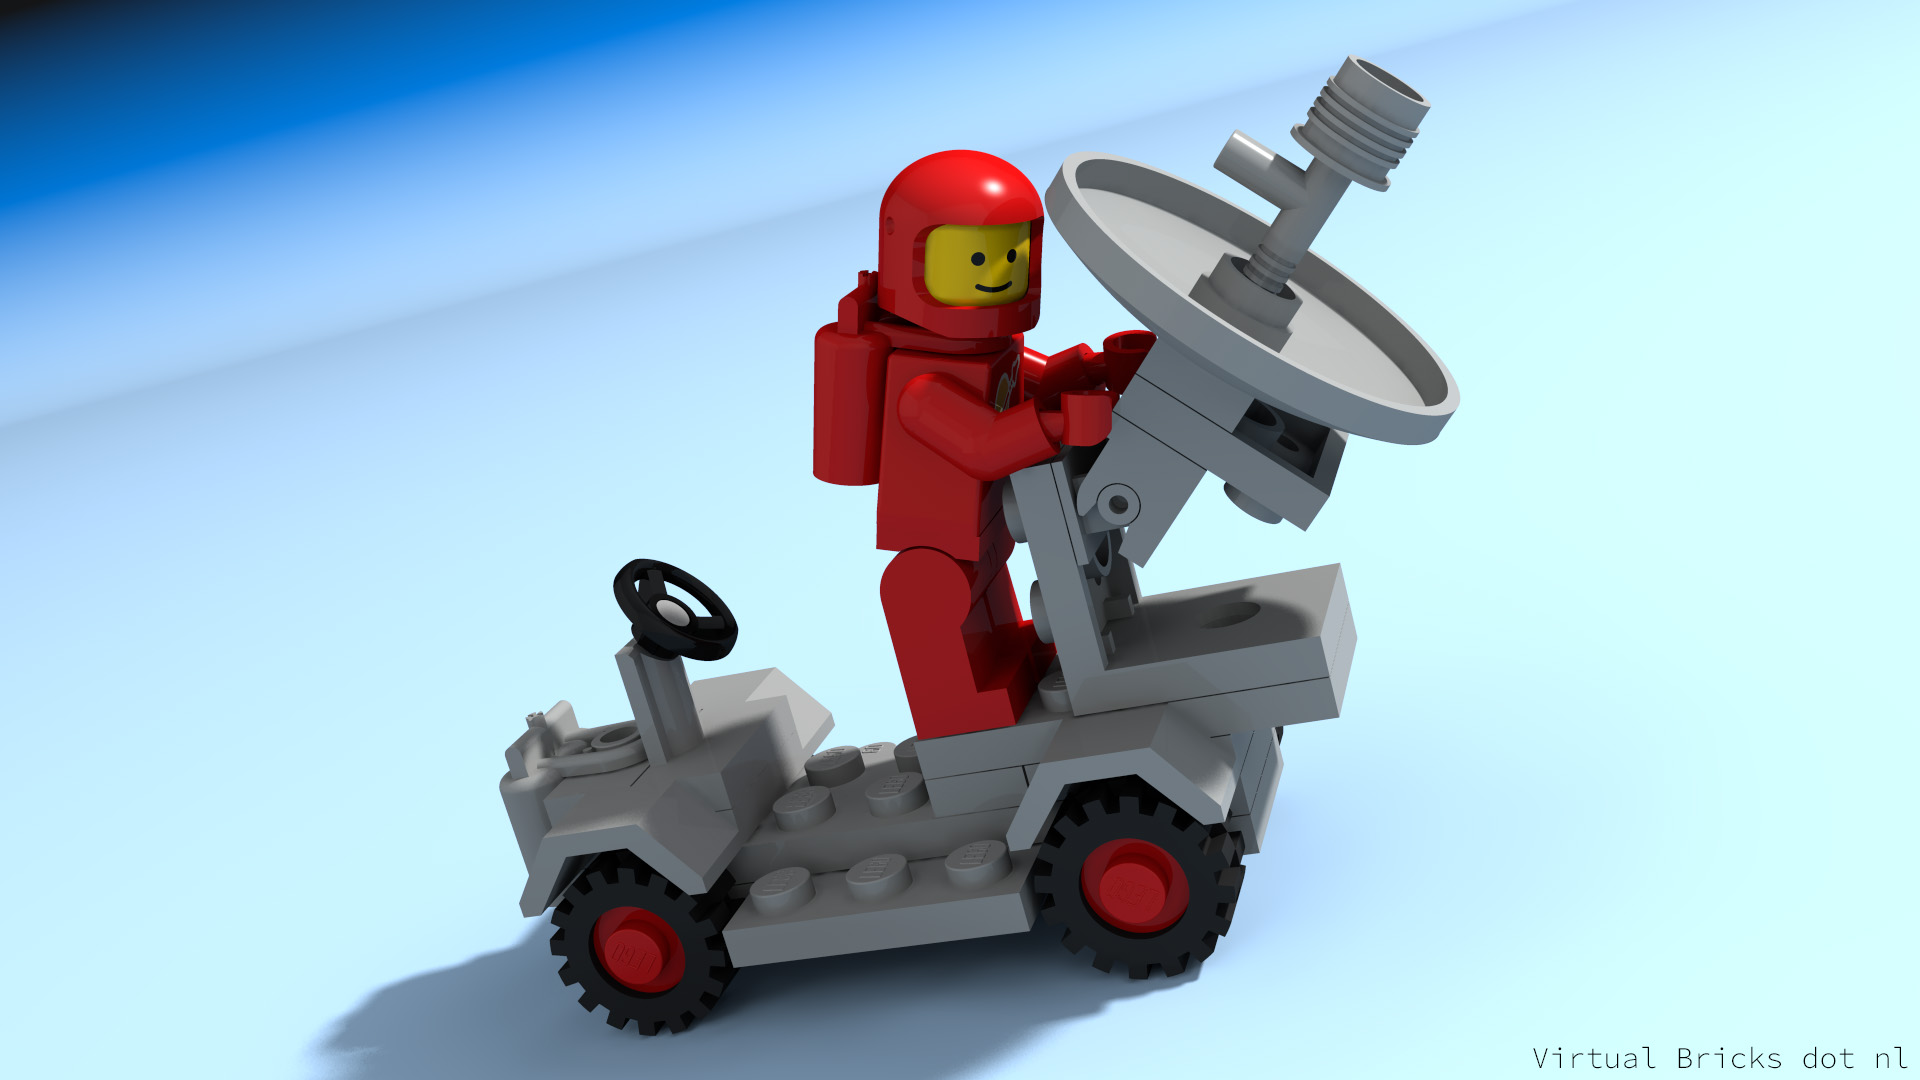 One of the first LEGO Classic Space models